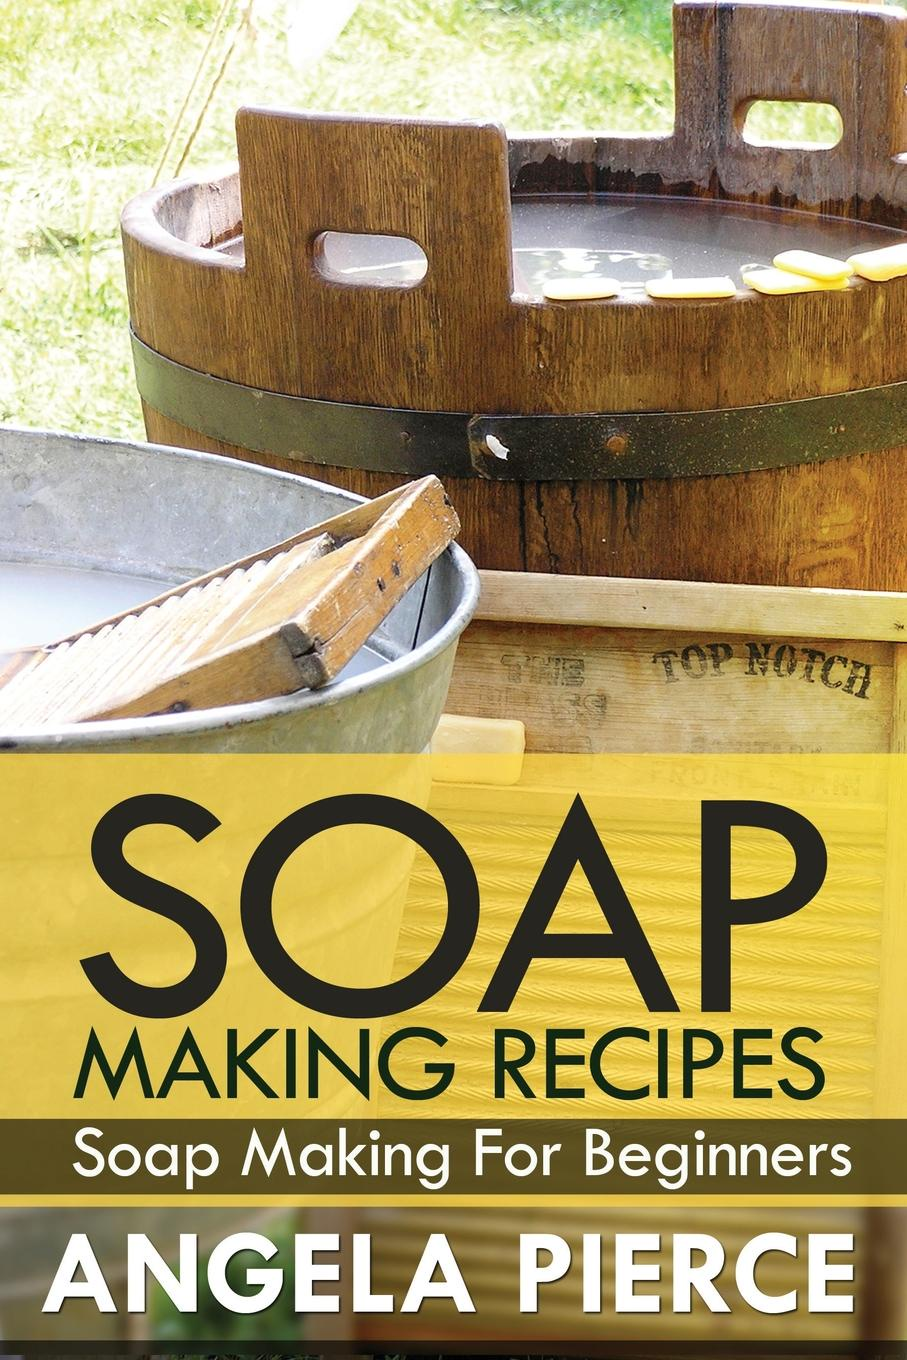 Pierce Angela, Angela Pierce. Soap Making Recipes. Soap Making for Beginners